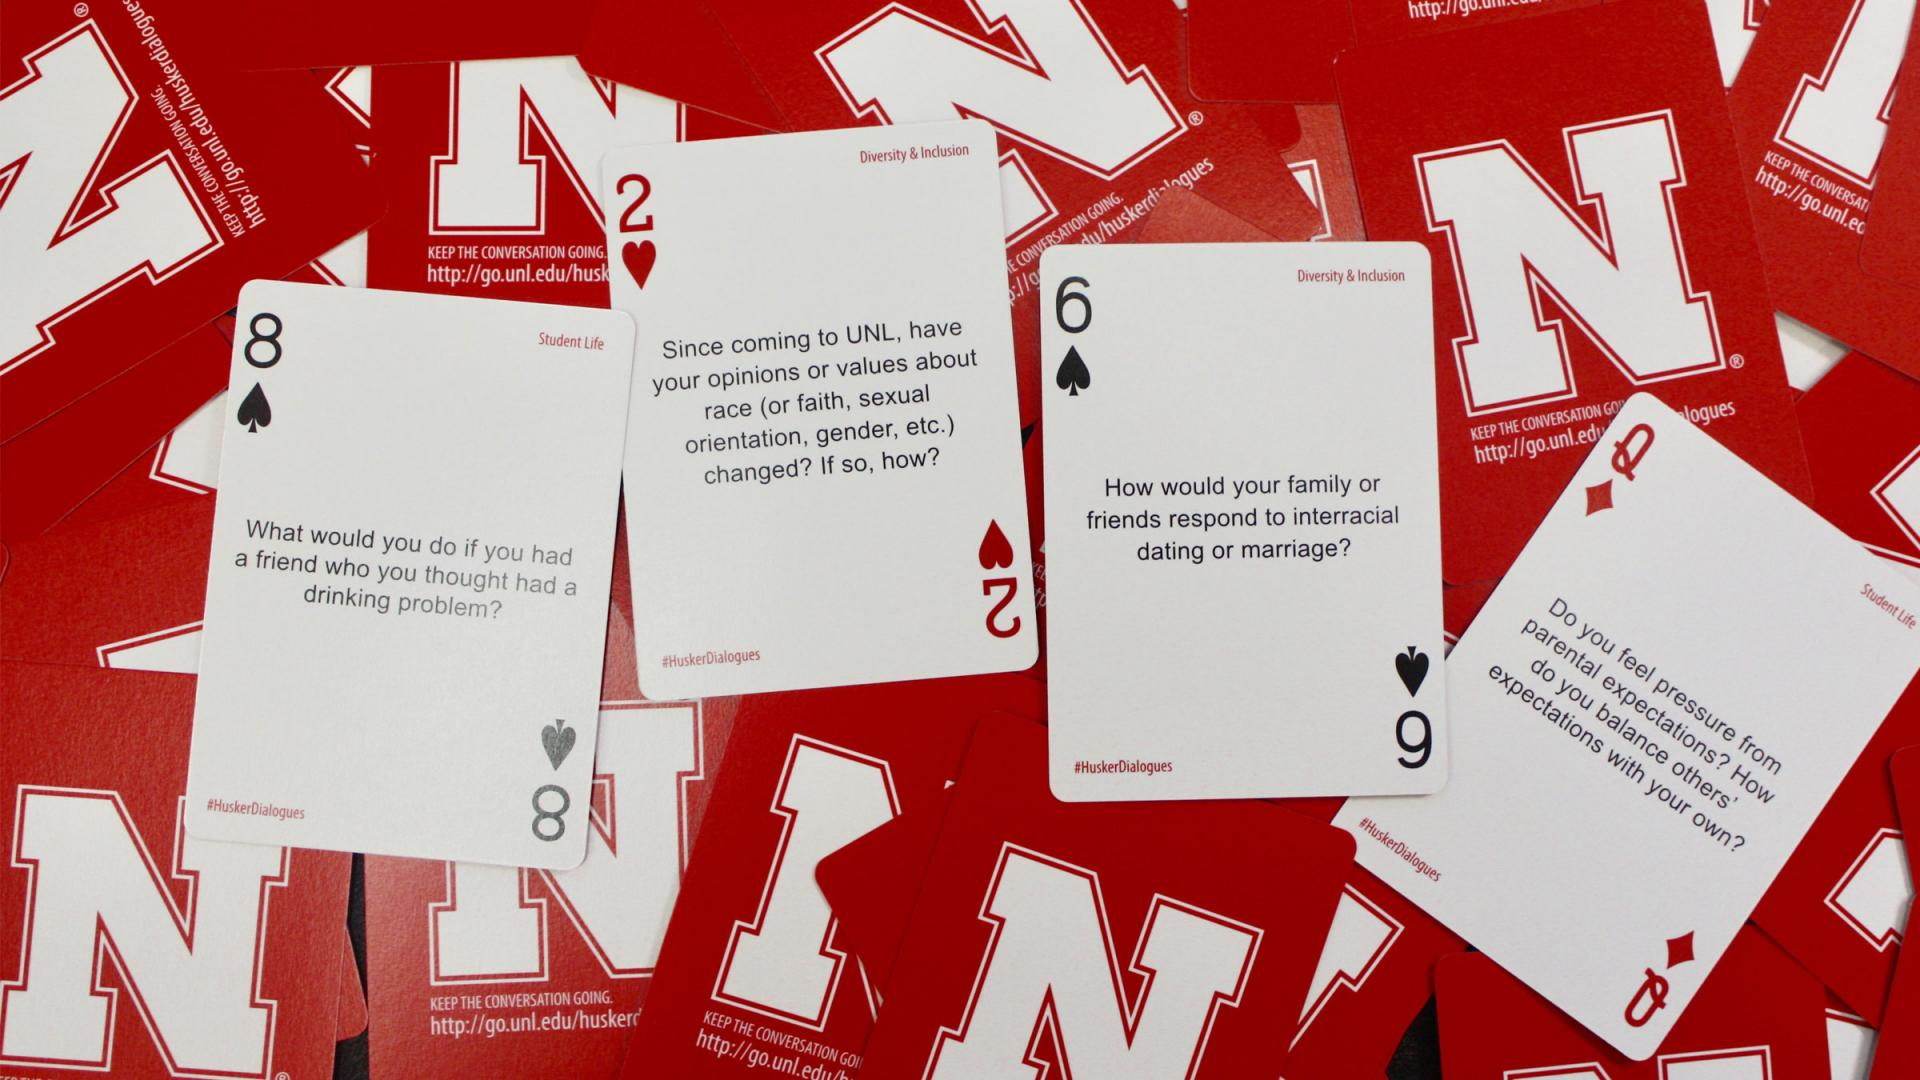 Husker Dialogues question cards